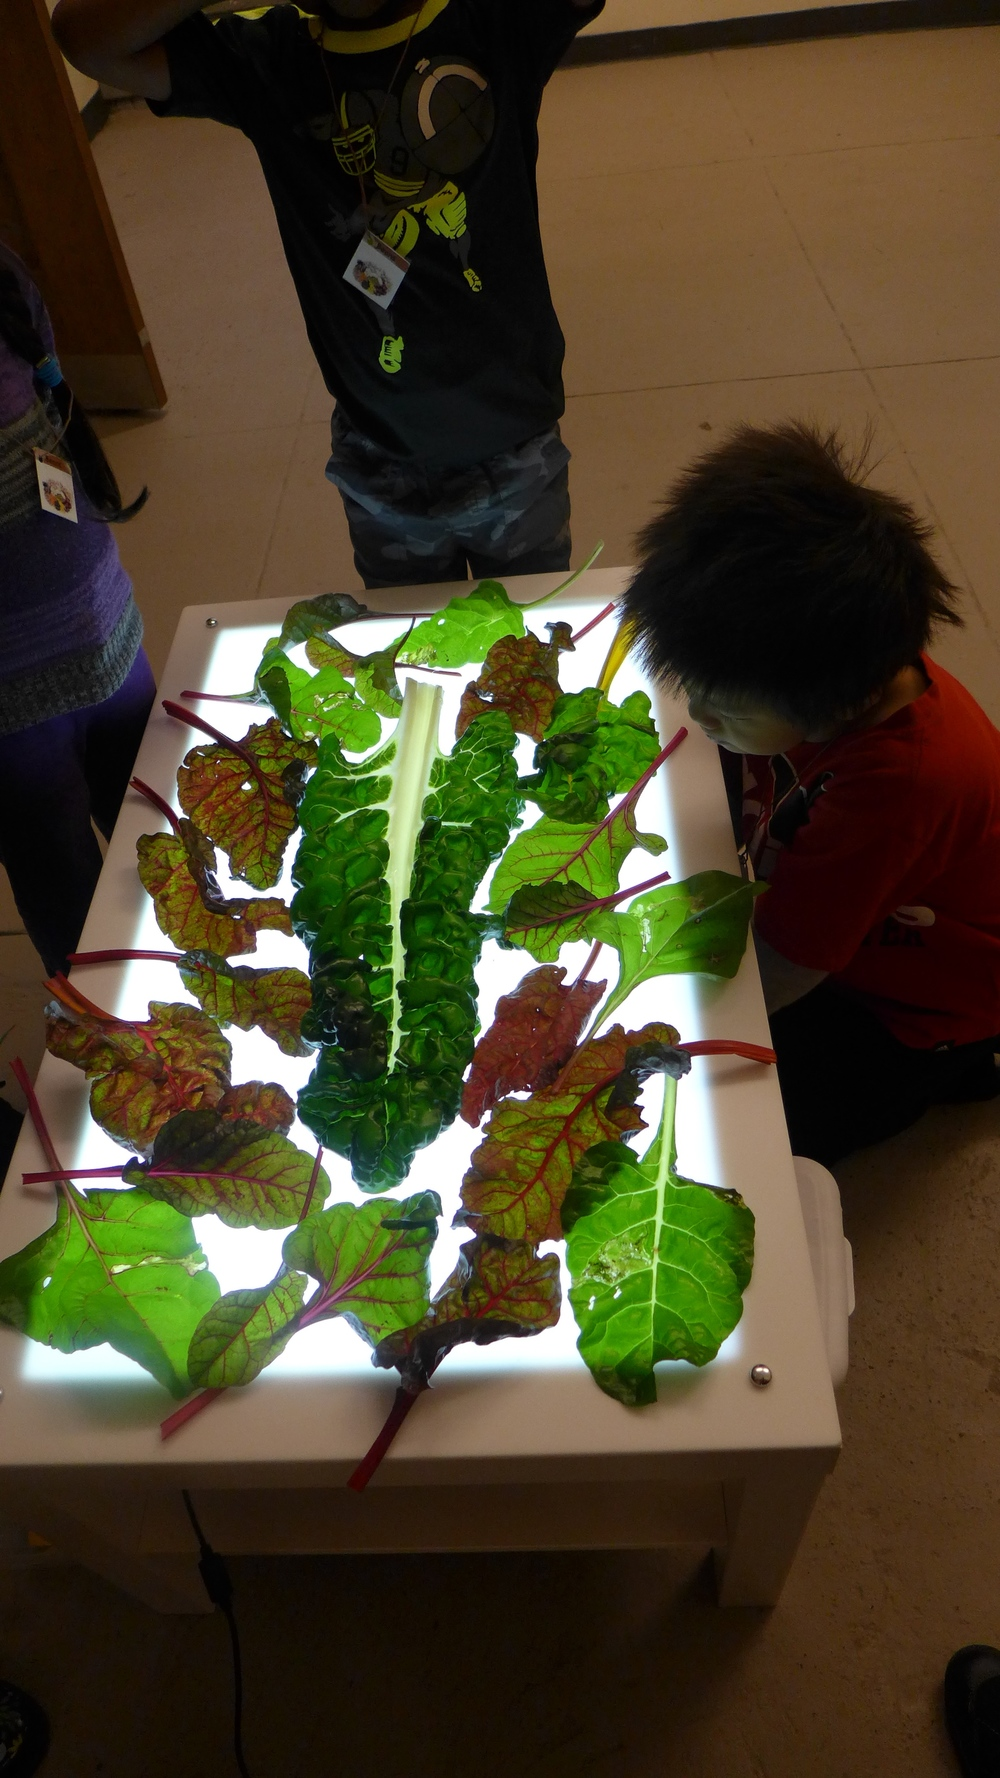 A lightbox is a perfect way to get a close look at the plants we eat.